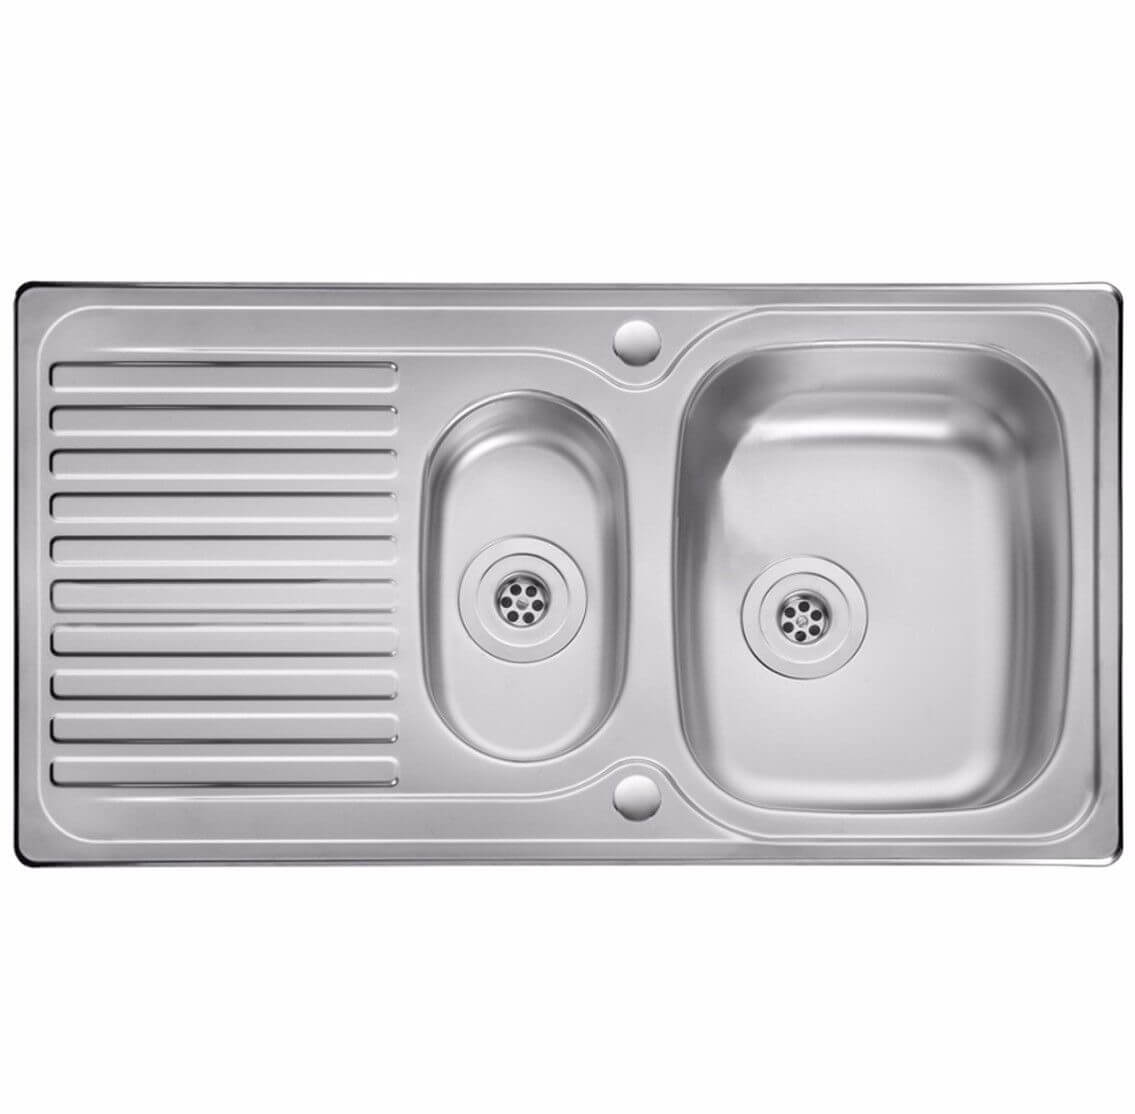 Leisure 1.5 Bowl 1 Tap Hole Reversible Kitchen Sink 950mm x 508mm ...